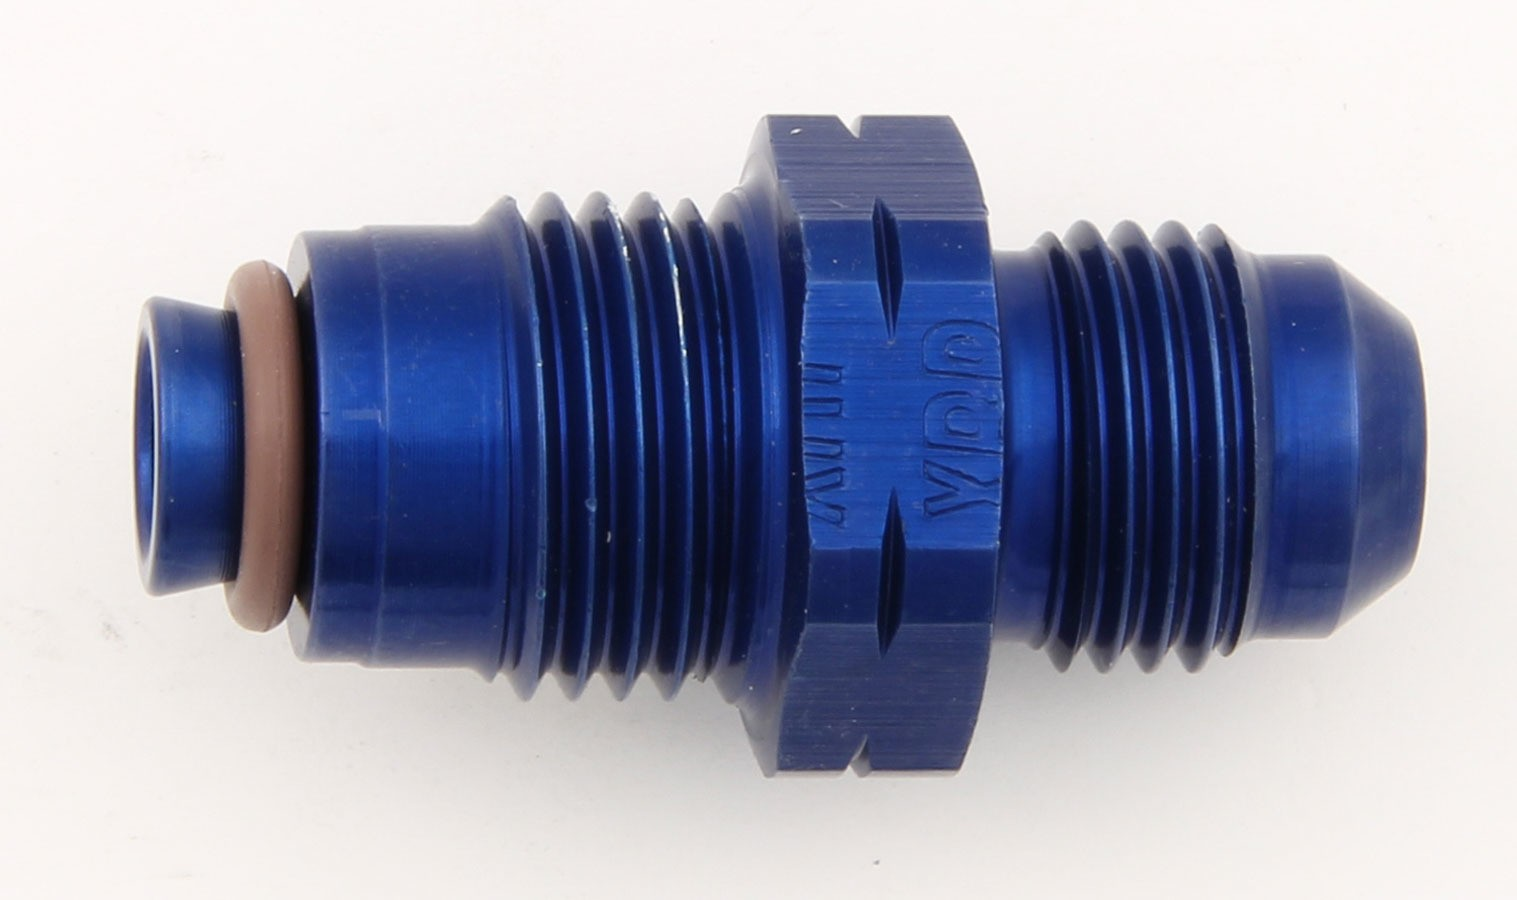 XRP 791615 Fitting, Adapter, Straight, 6 AN Male to 16 mm x 1.50 Male, Aluminum, Blue Anodize, Each